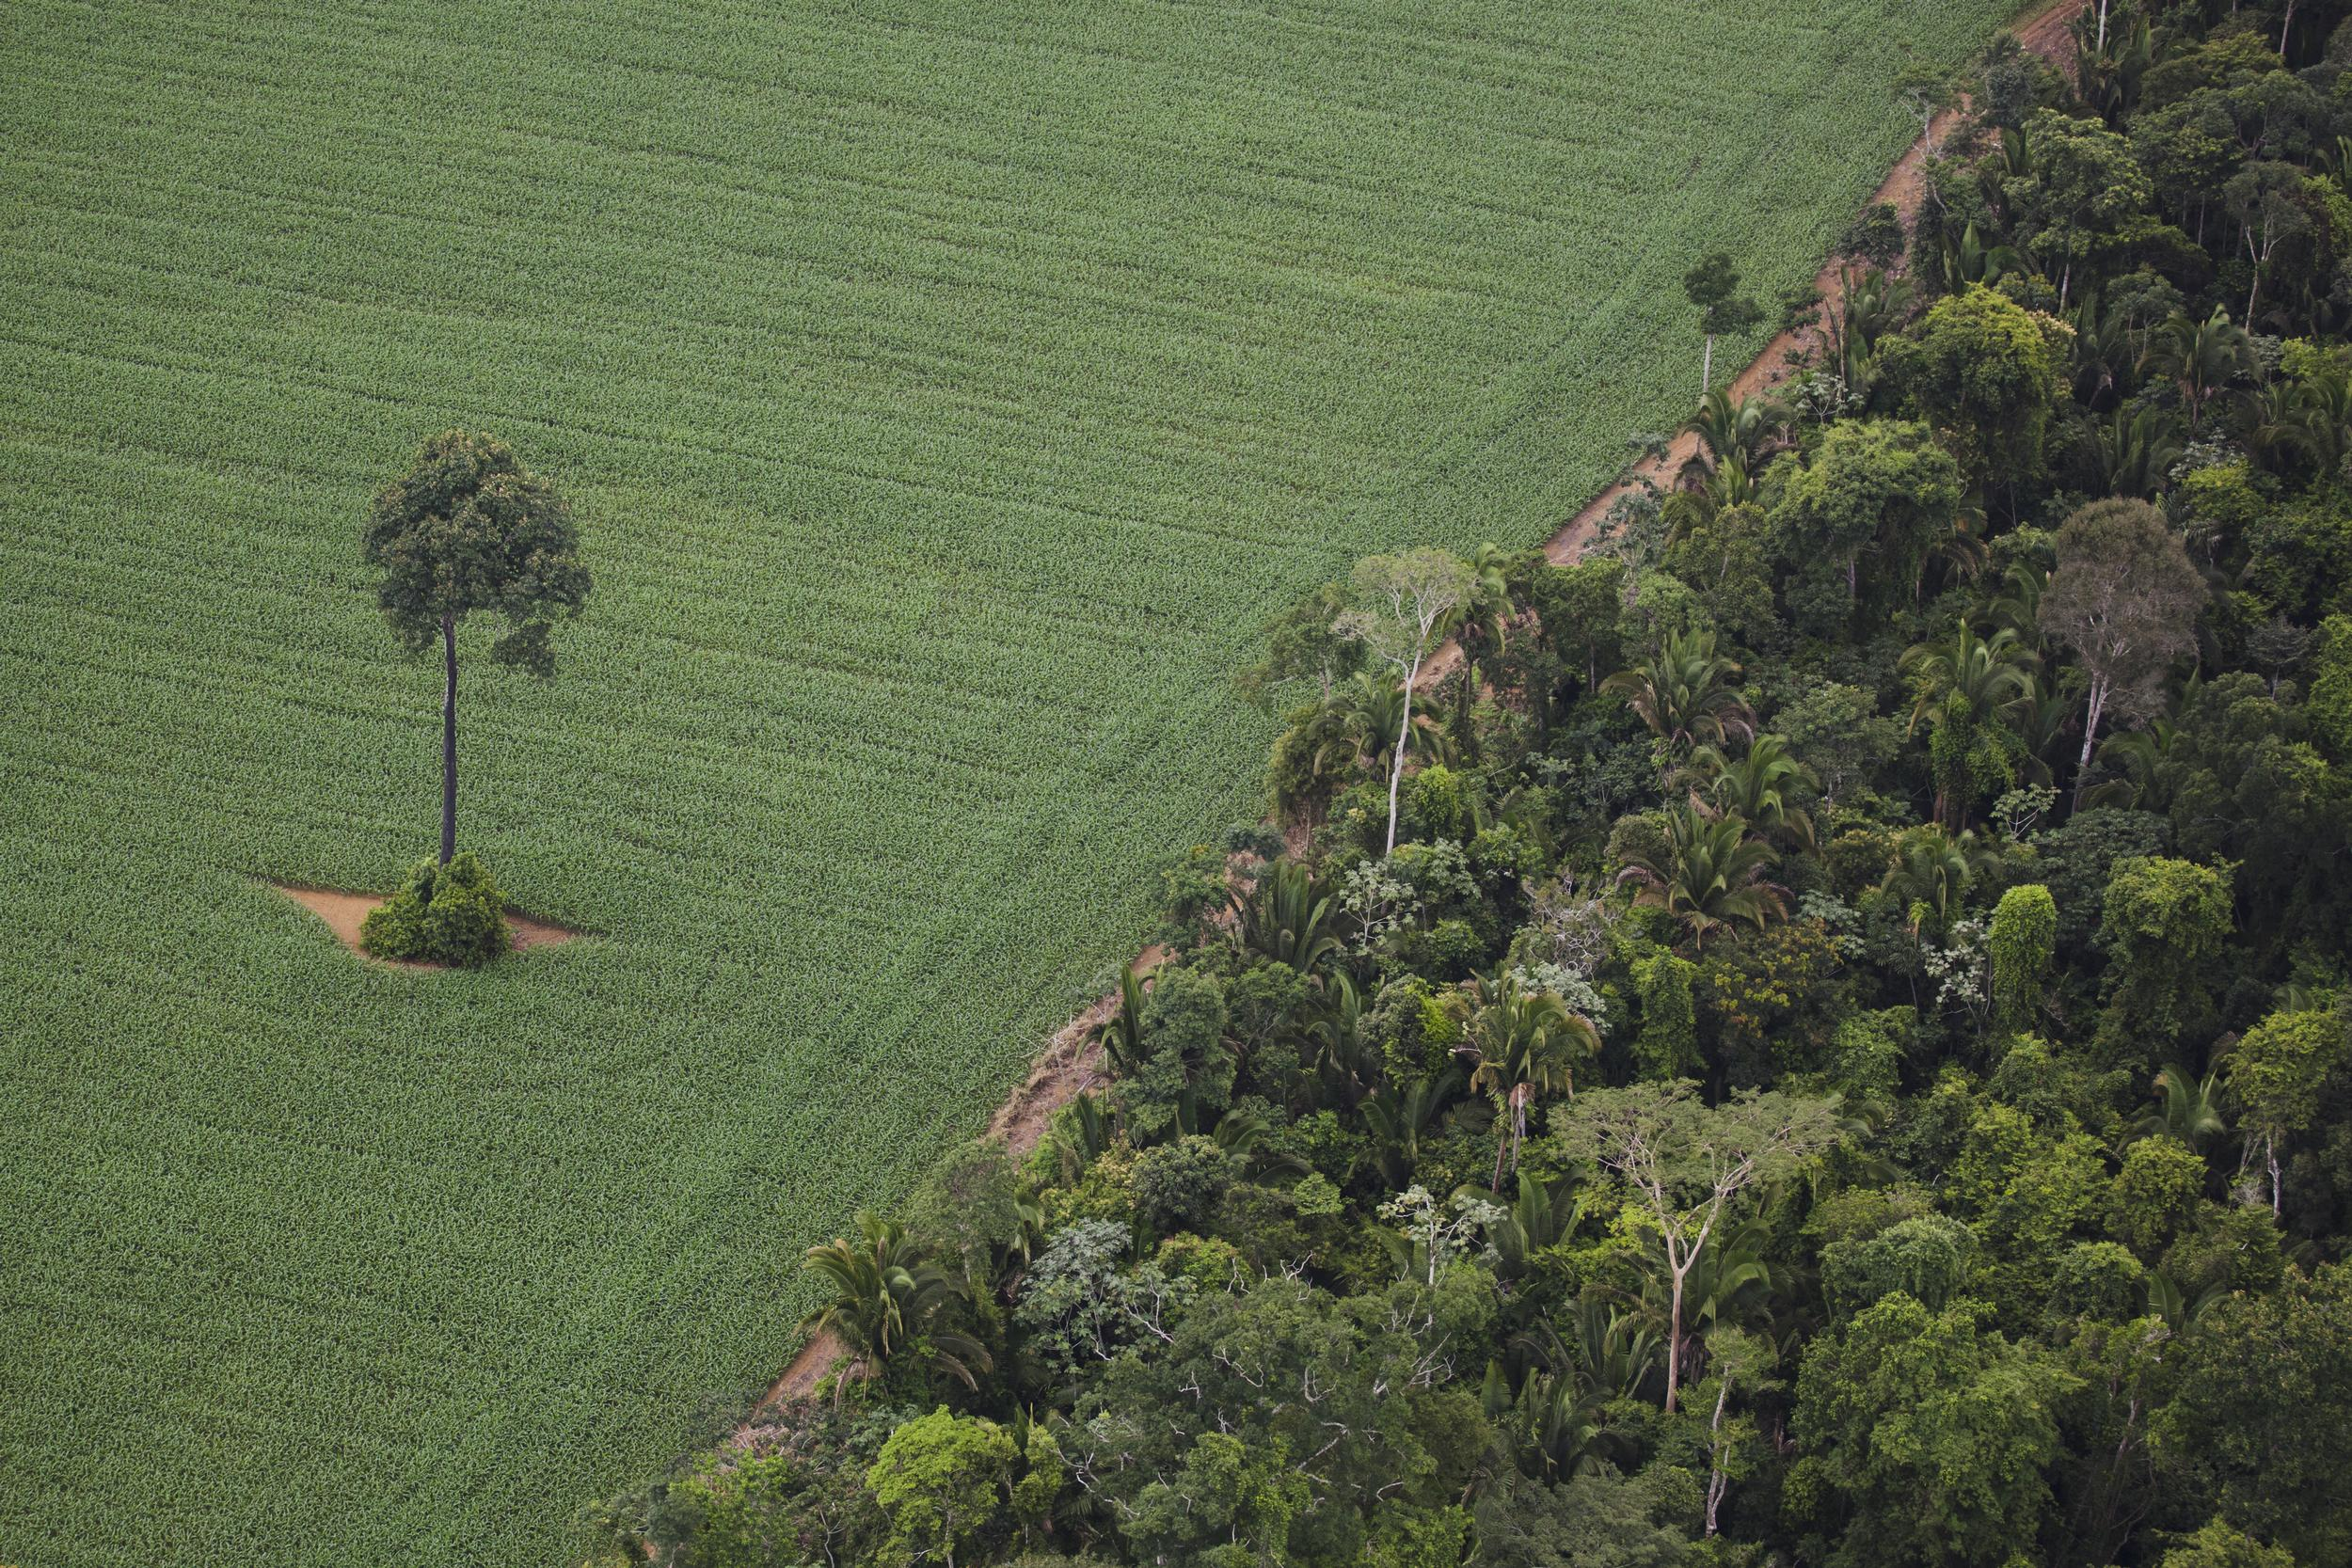 deforested area of forest